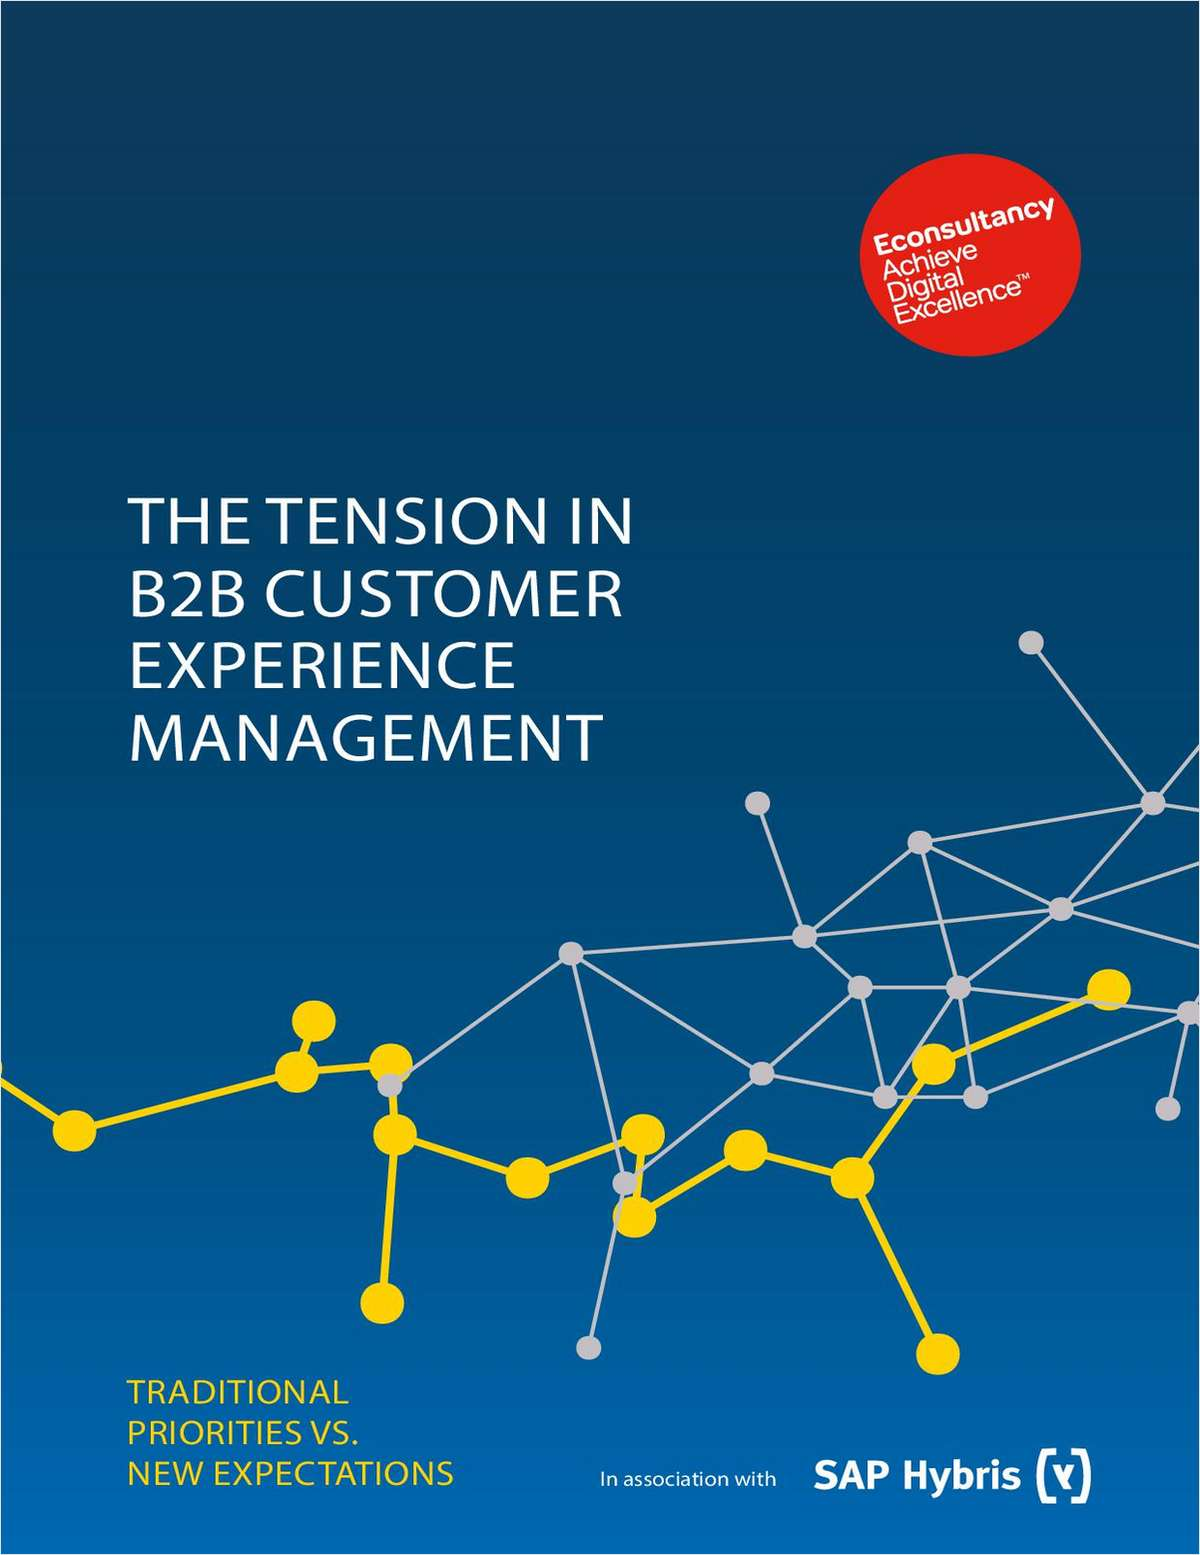 The Tension in B2B Customer Experience Management